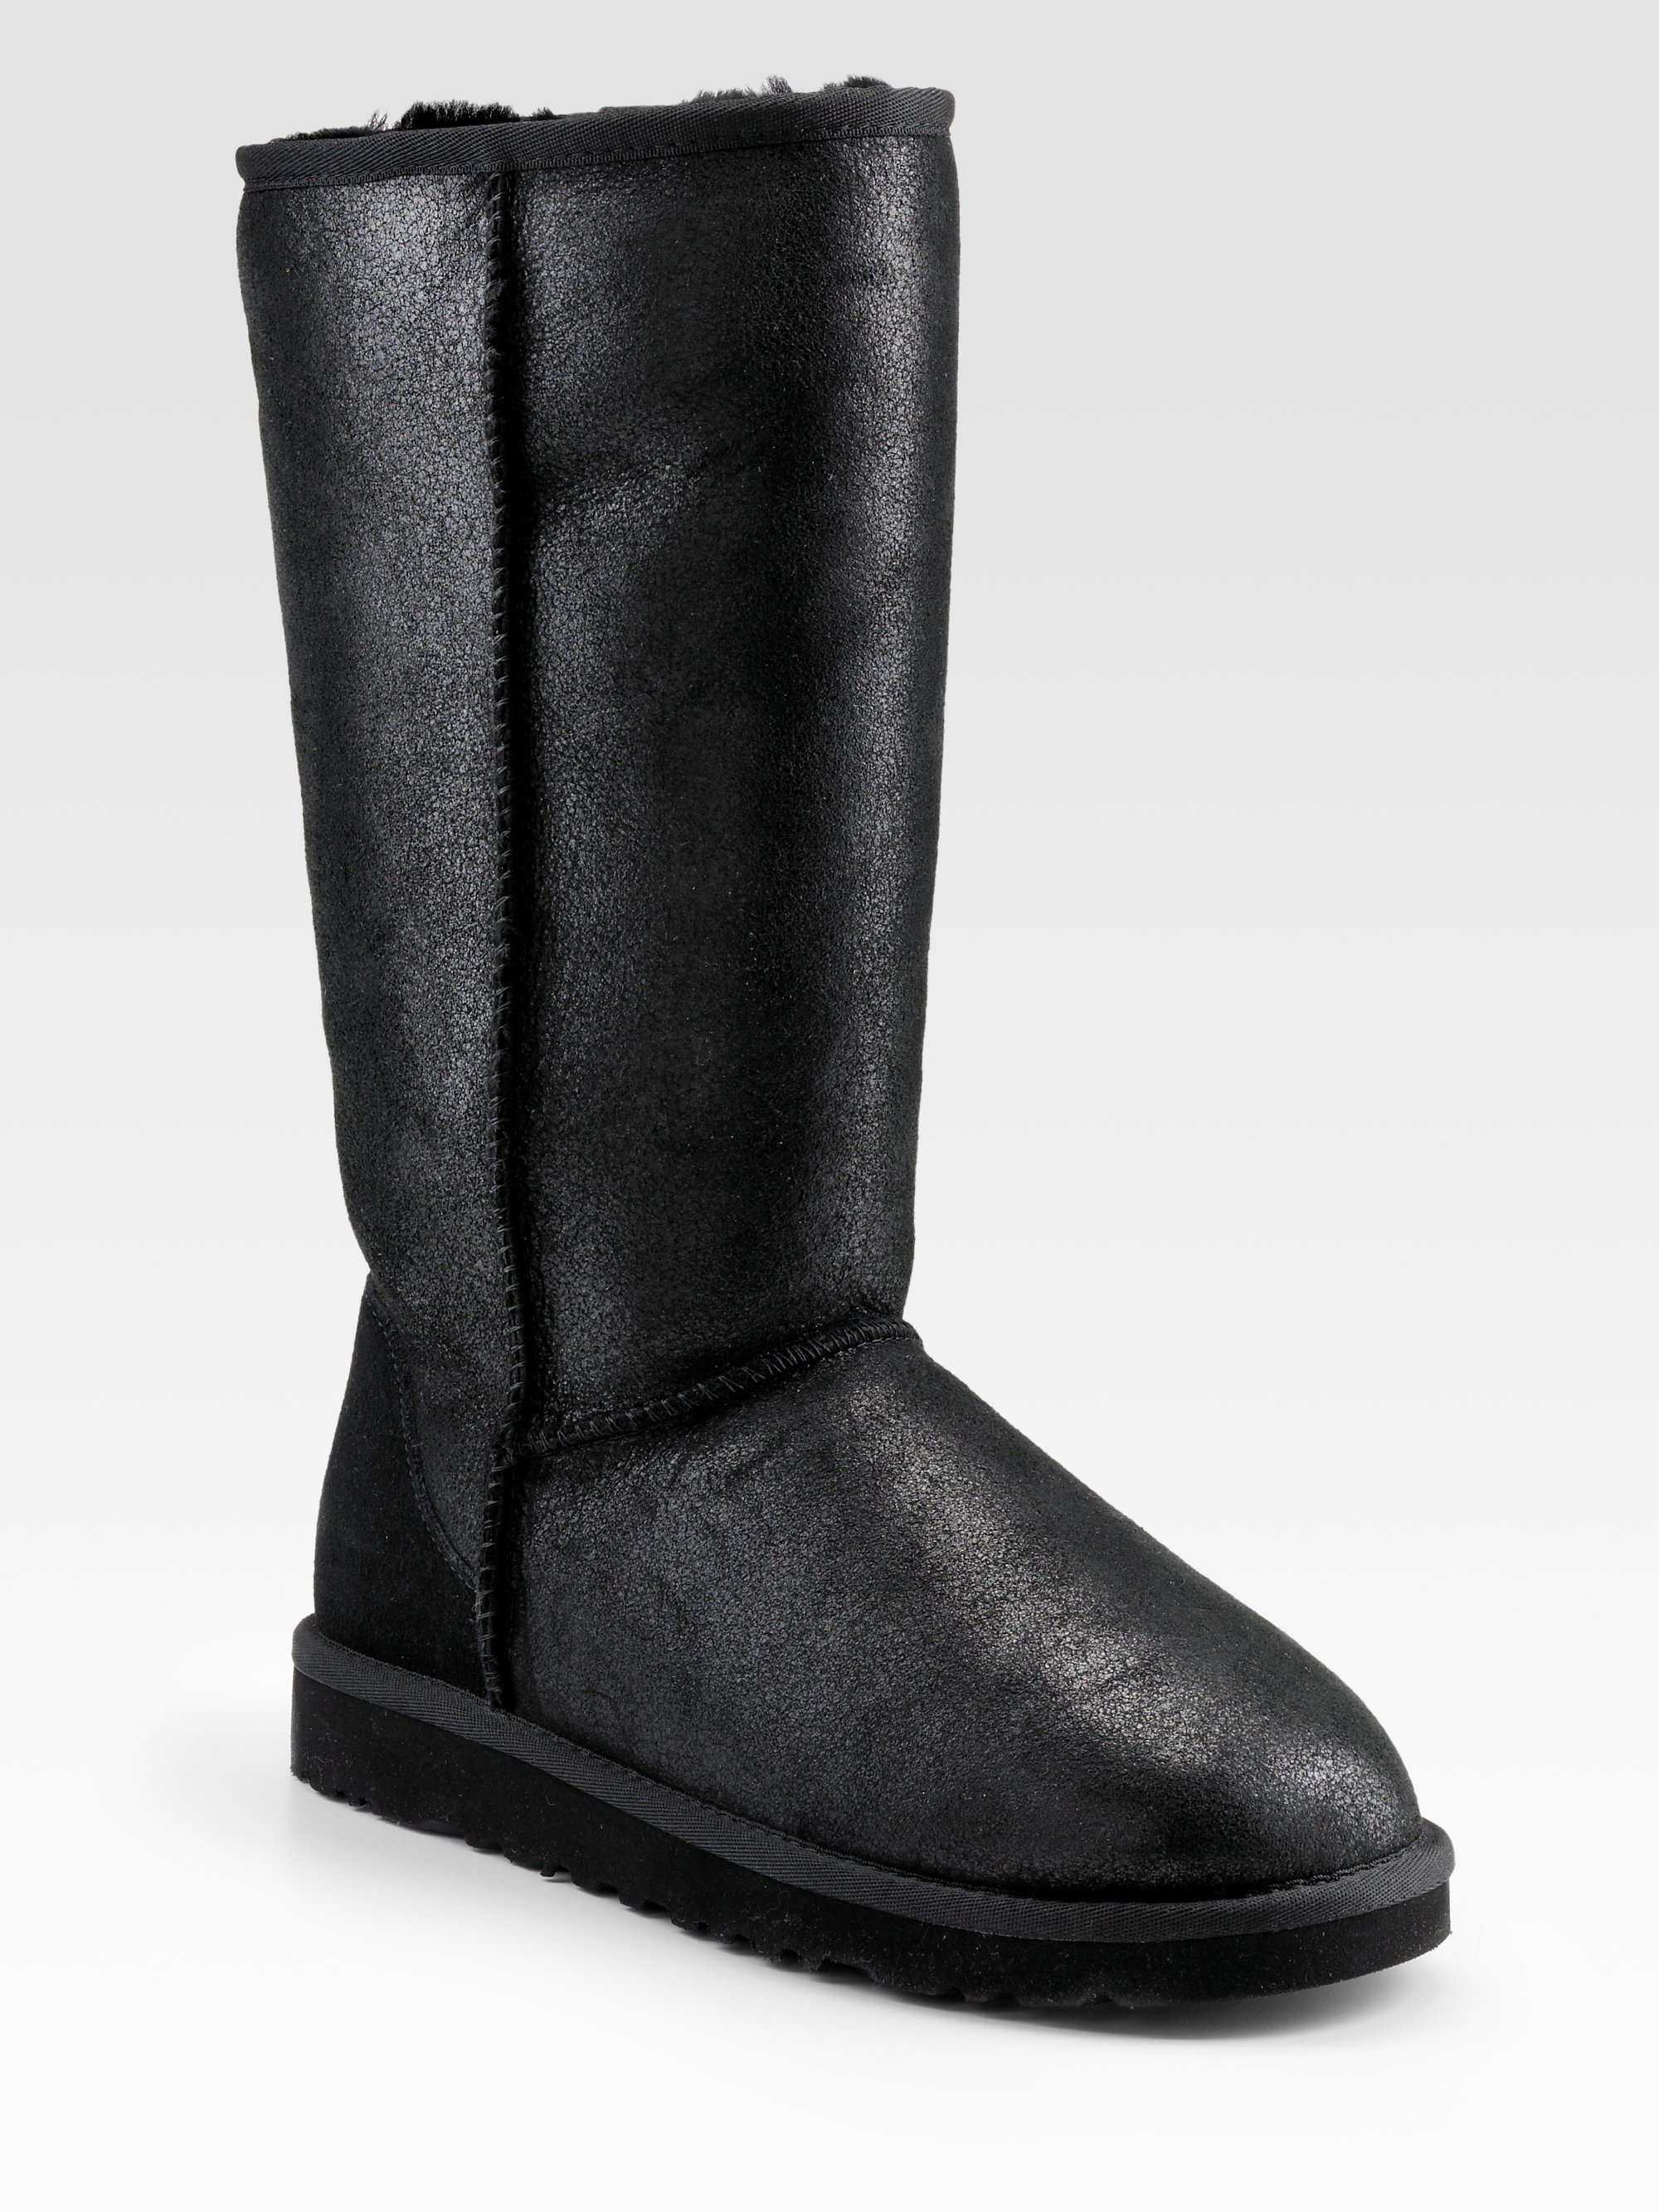 be8f0c493c5 ... australia lyst ugg classic leather tall bomber boots in black 349d5  b0503